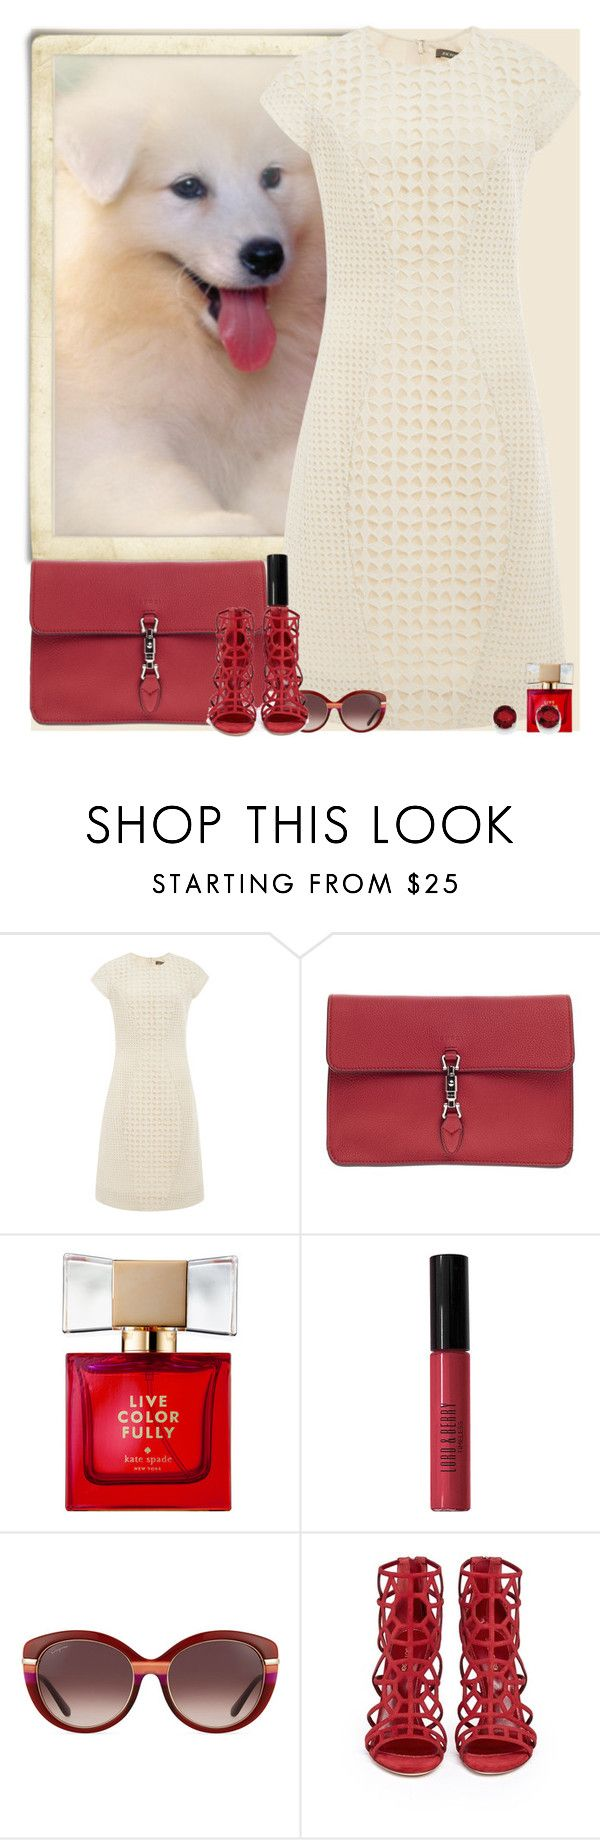 """""""Bez naslova #3023"""" by gita016 ❤ liked on Polyvore featuring Zac Posen, Gucci, Kate Spade, Lord & Berry, Salvatore Ferragamo, Sergio Rossi and Kevin Jewelers"""